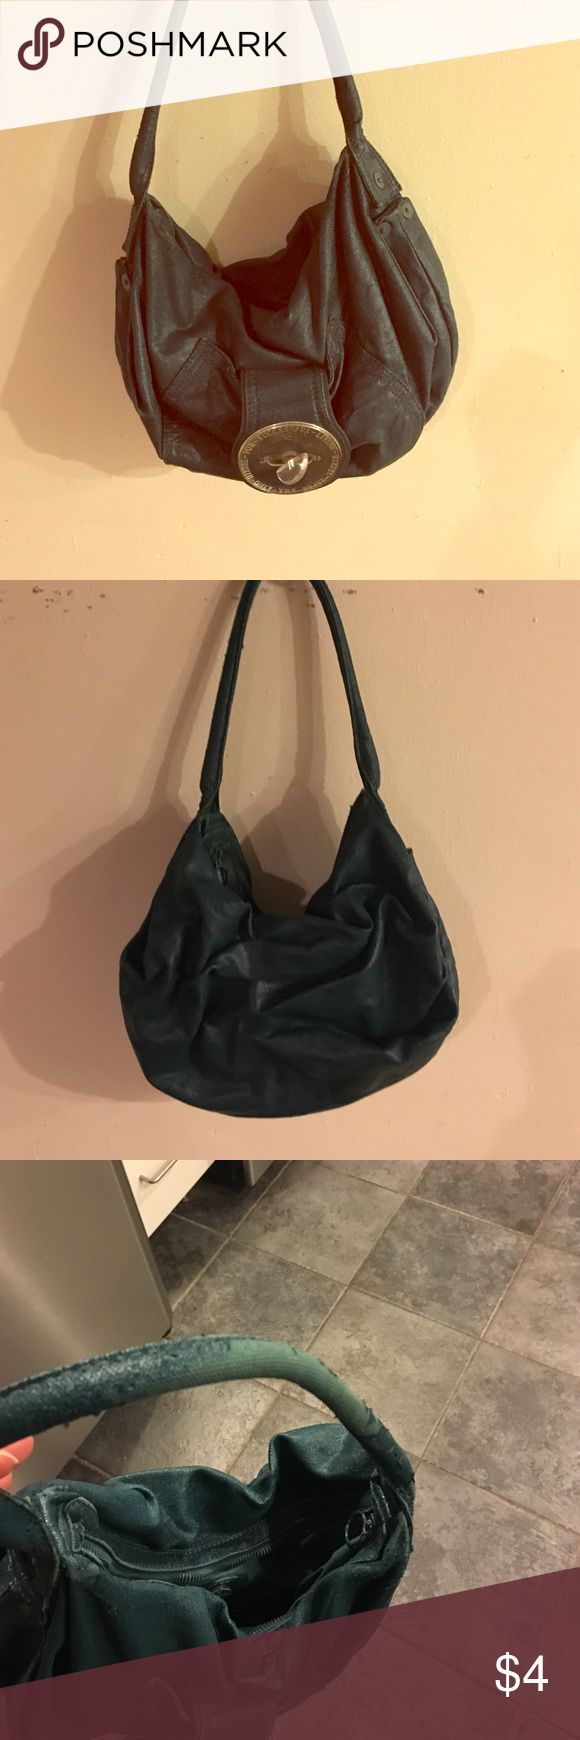 Diesel Purse Used condition Bags Shoulder Bags